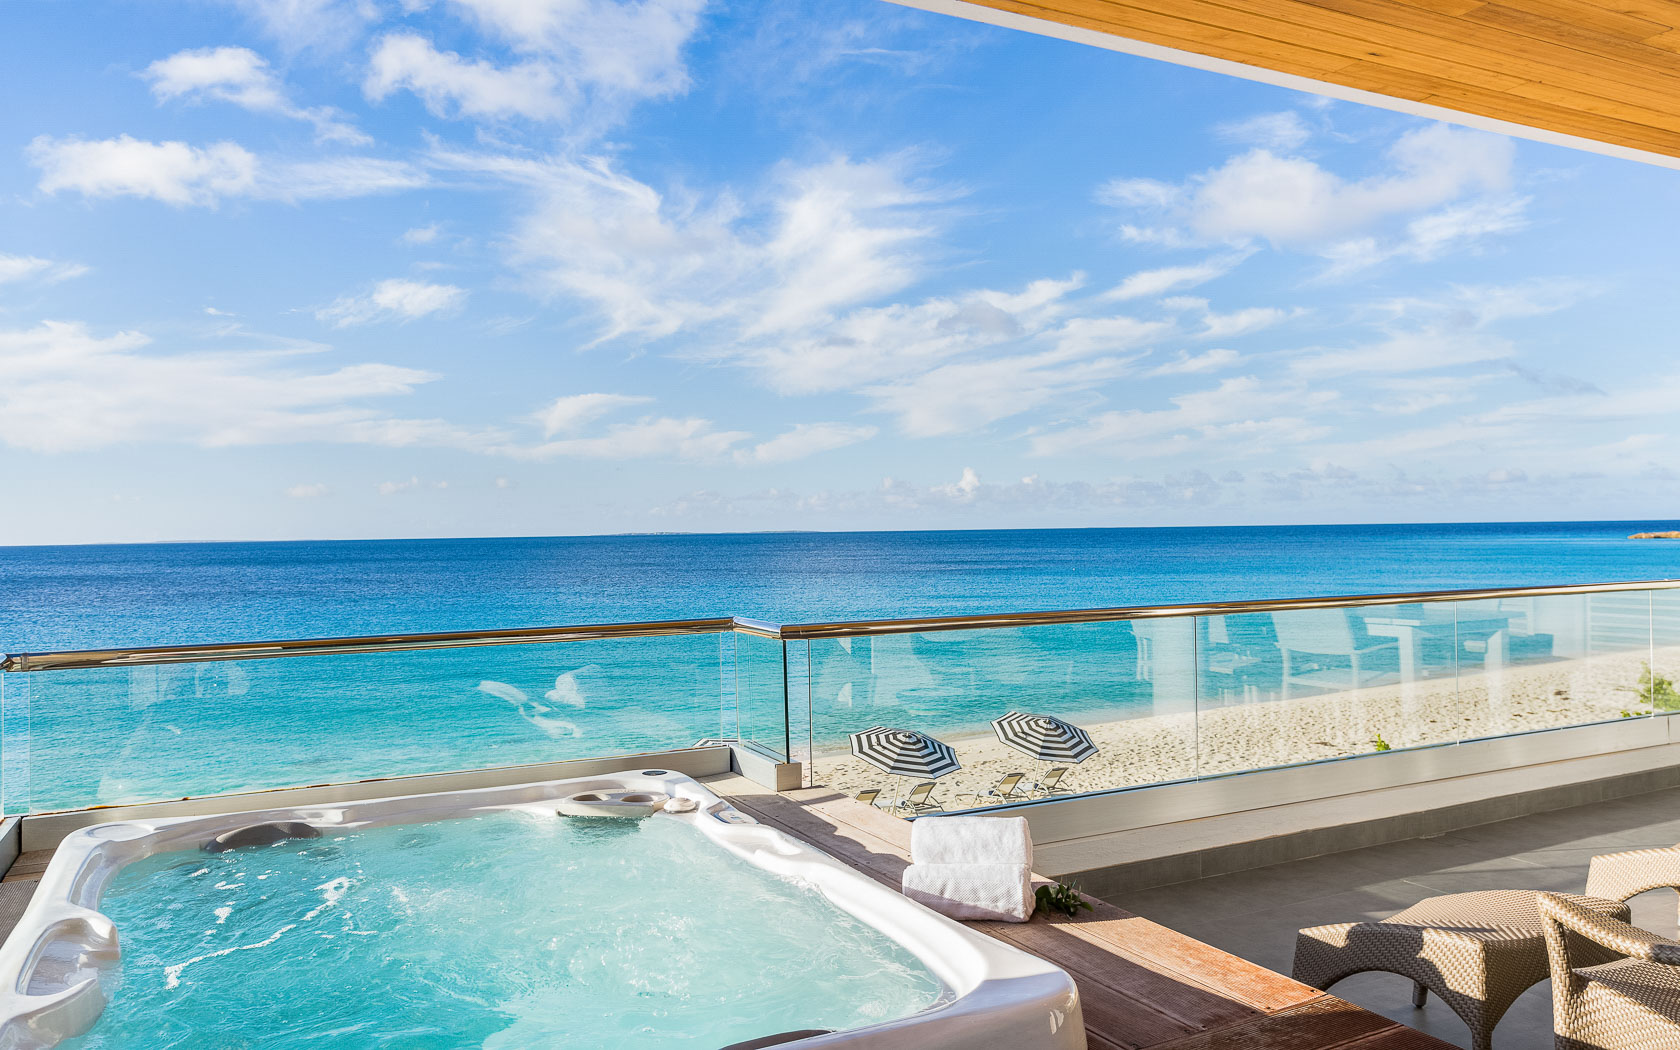 hot tub on room balcony that overlooks ocean